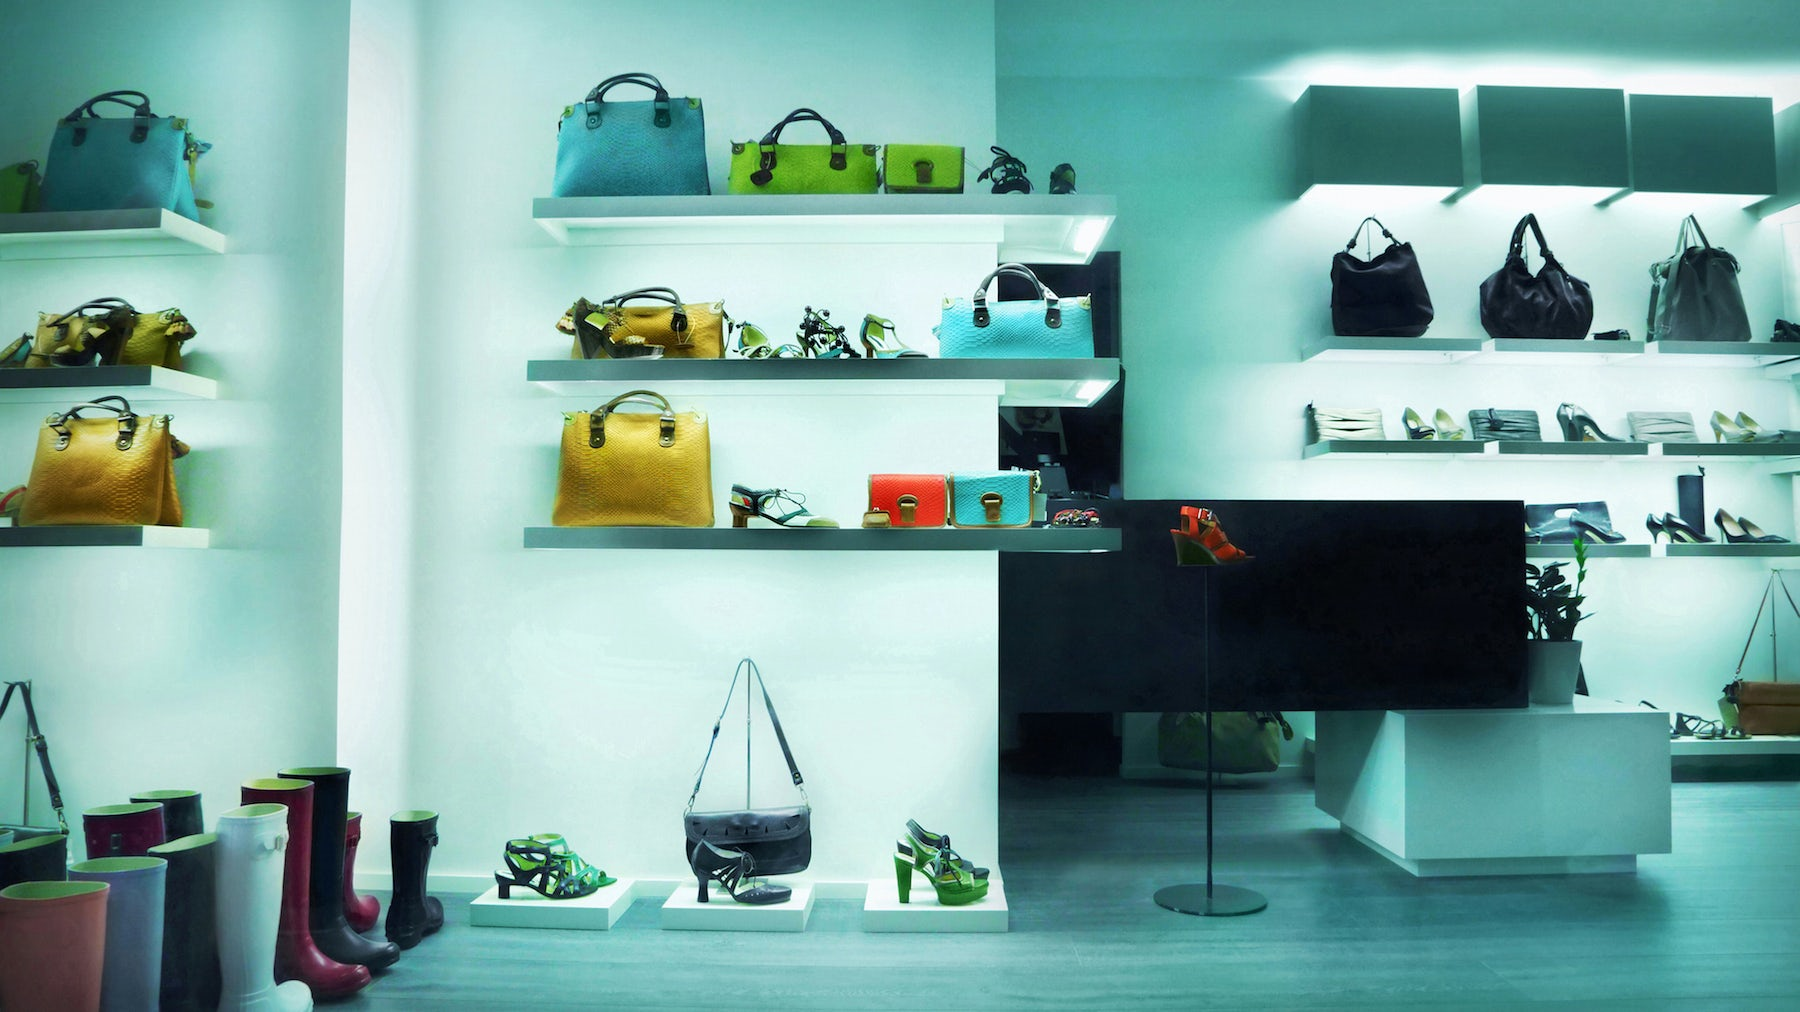 Product on display in a department store | Source: Shutterstock